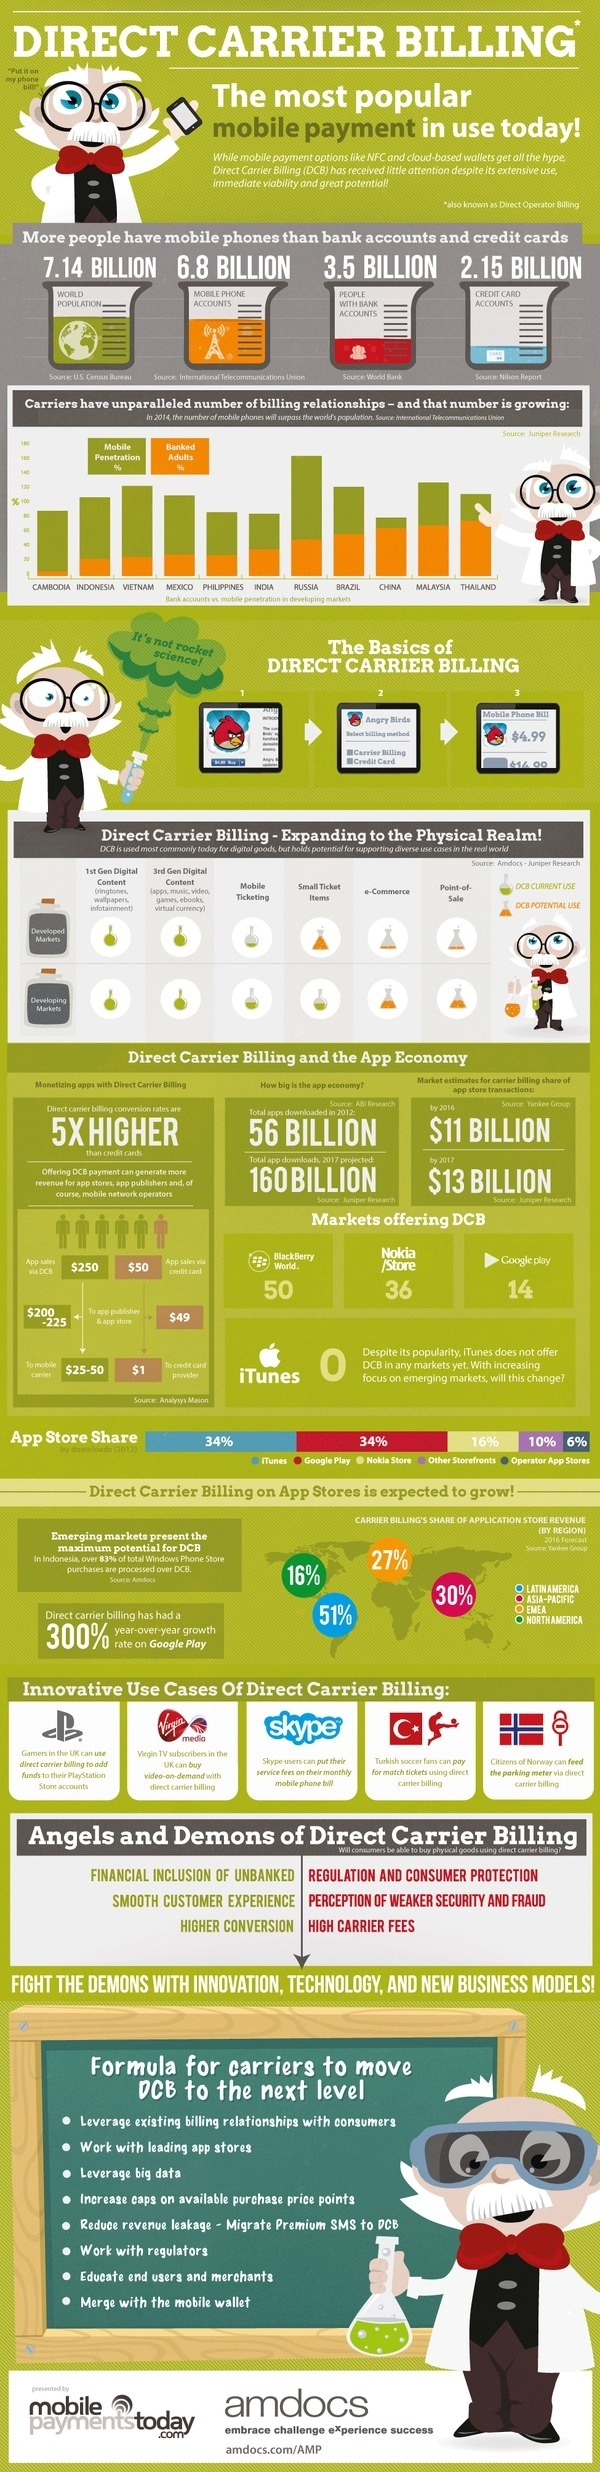 The Most Popular Mobile Payment in use Today [infographic] #billing #direct #economy #business #carrier #infographic #app #mobile #download